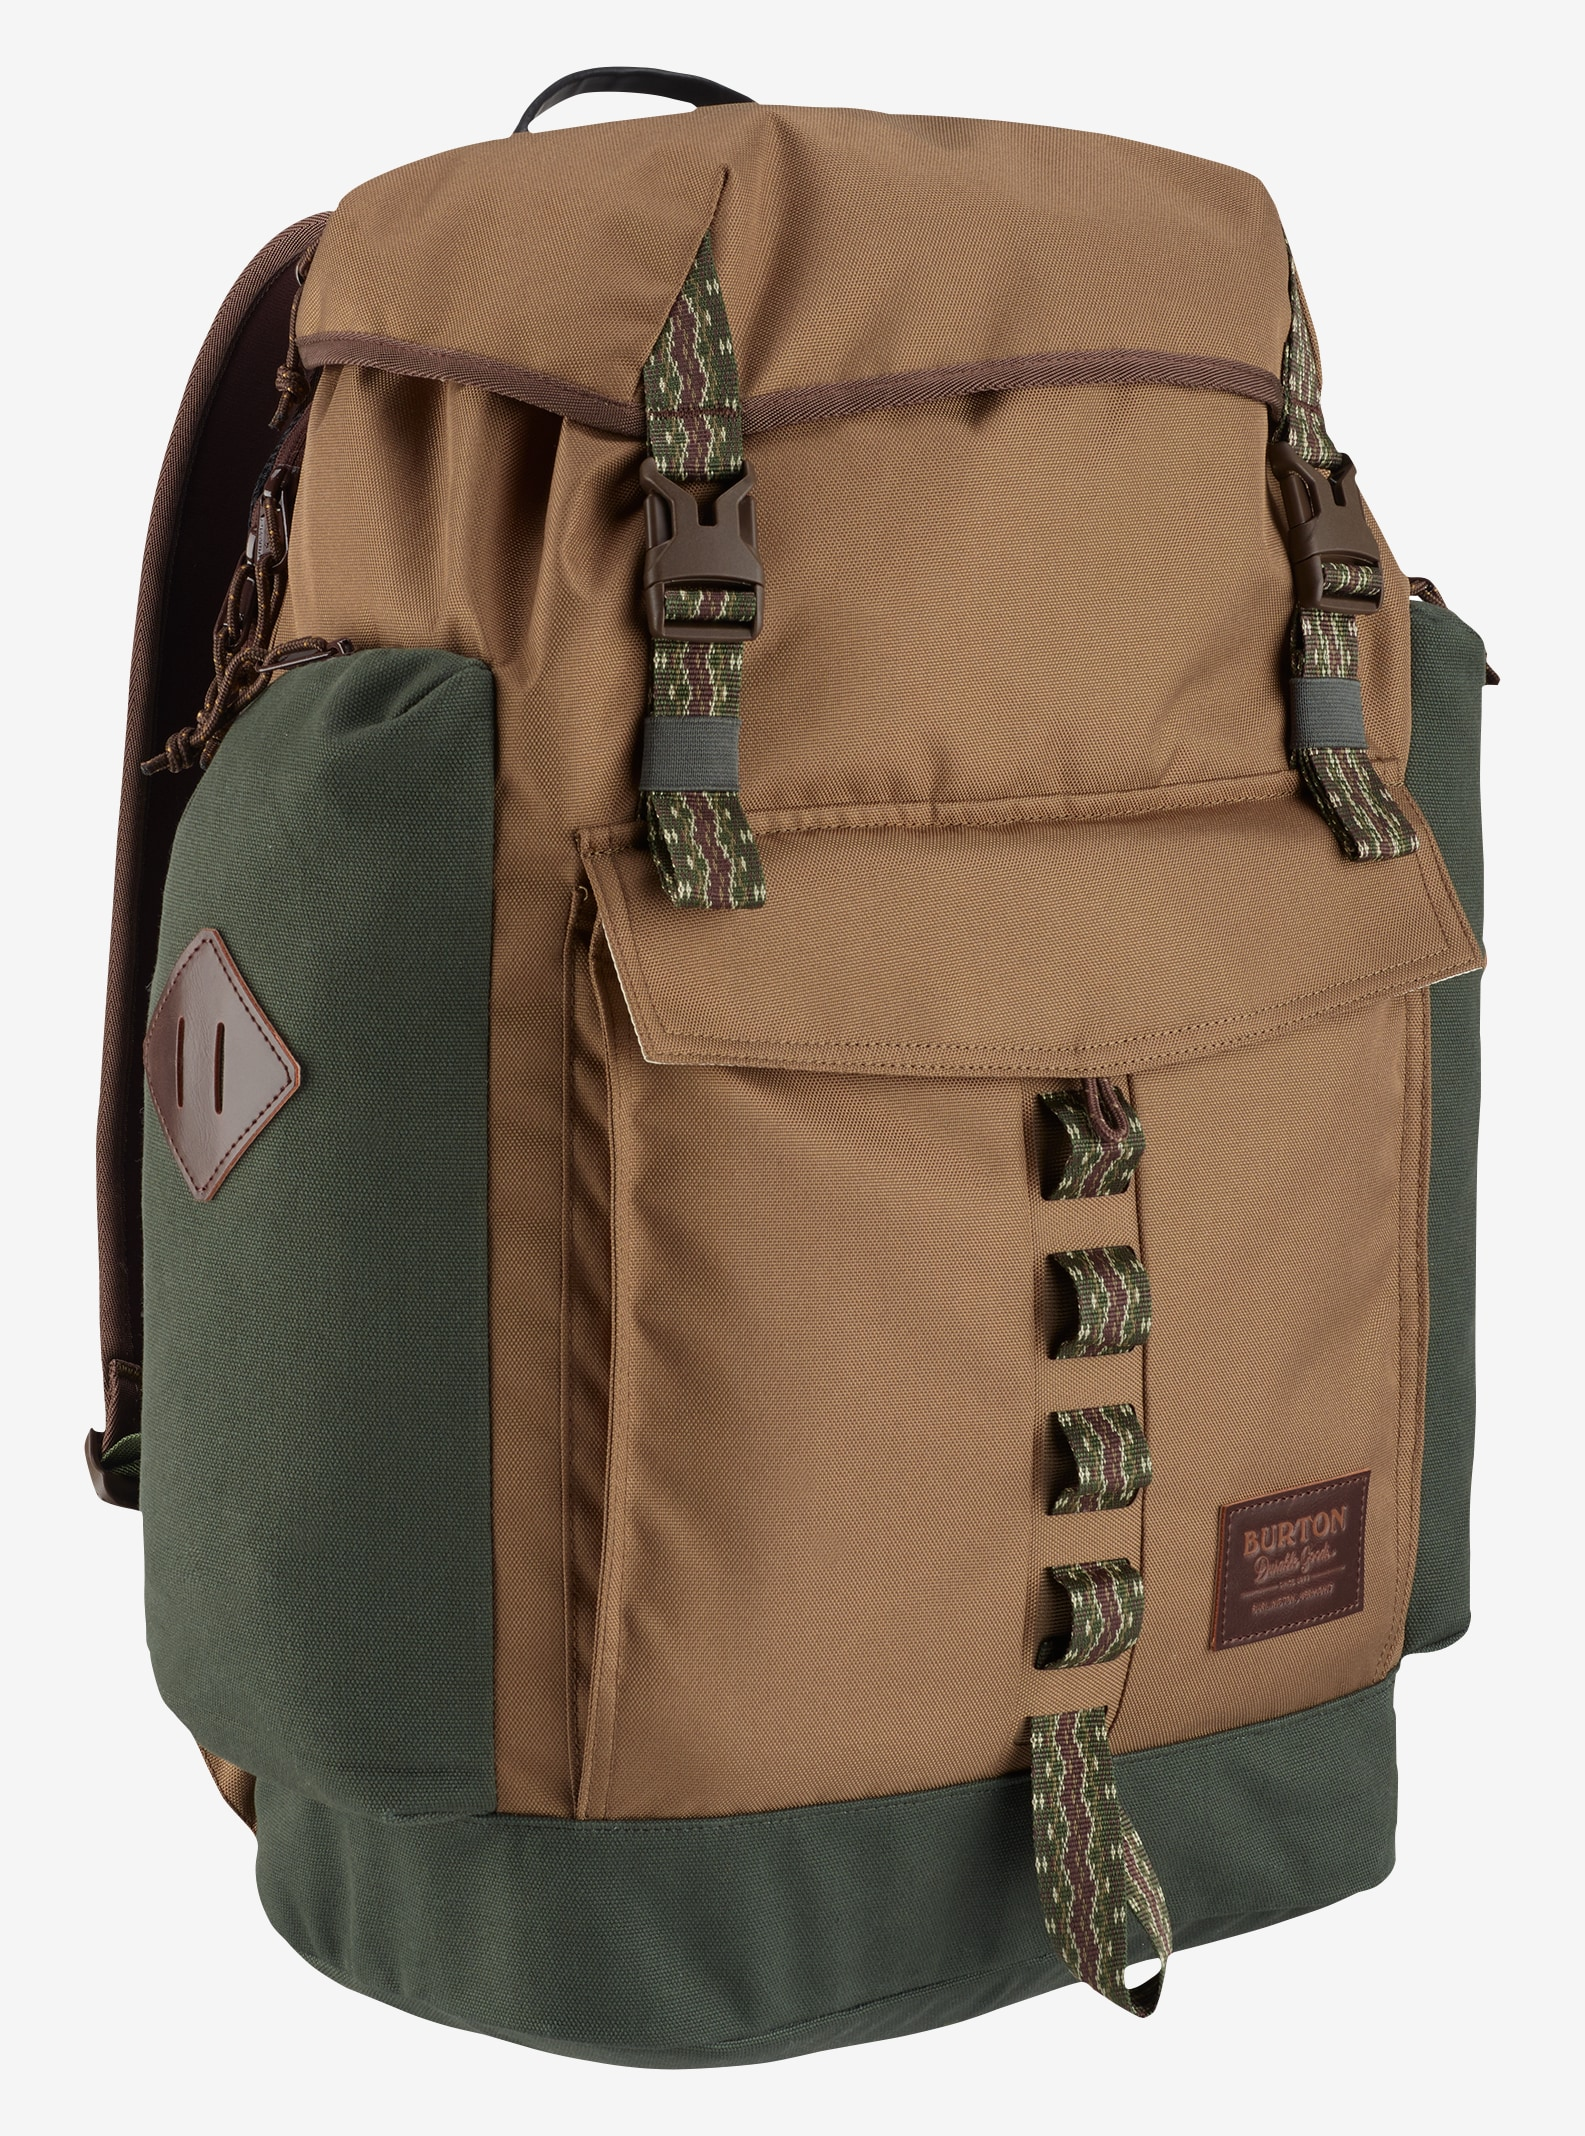 Burton Fathom Backpack shown in Kelp Coated